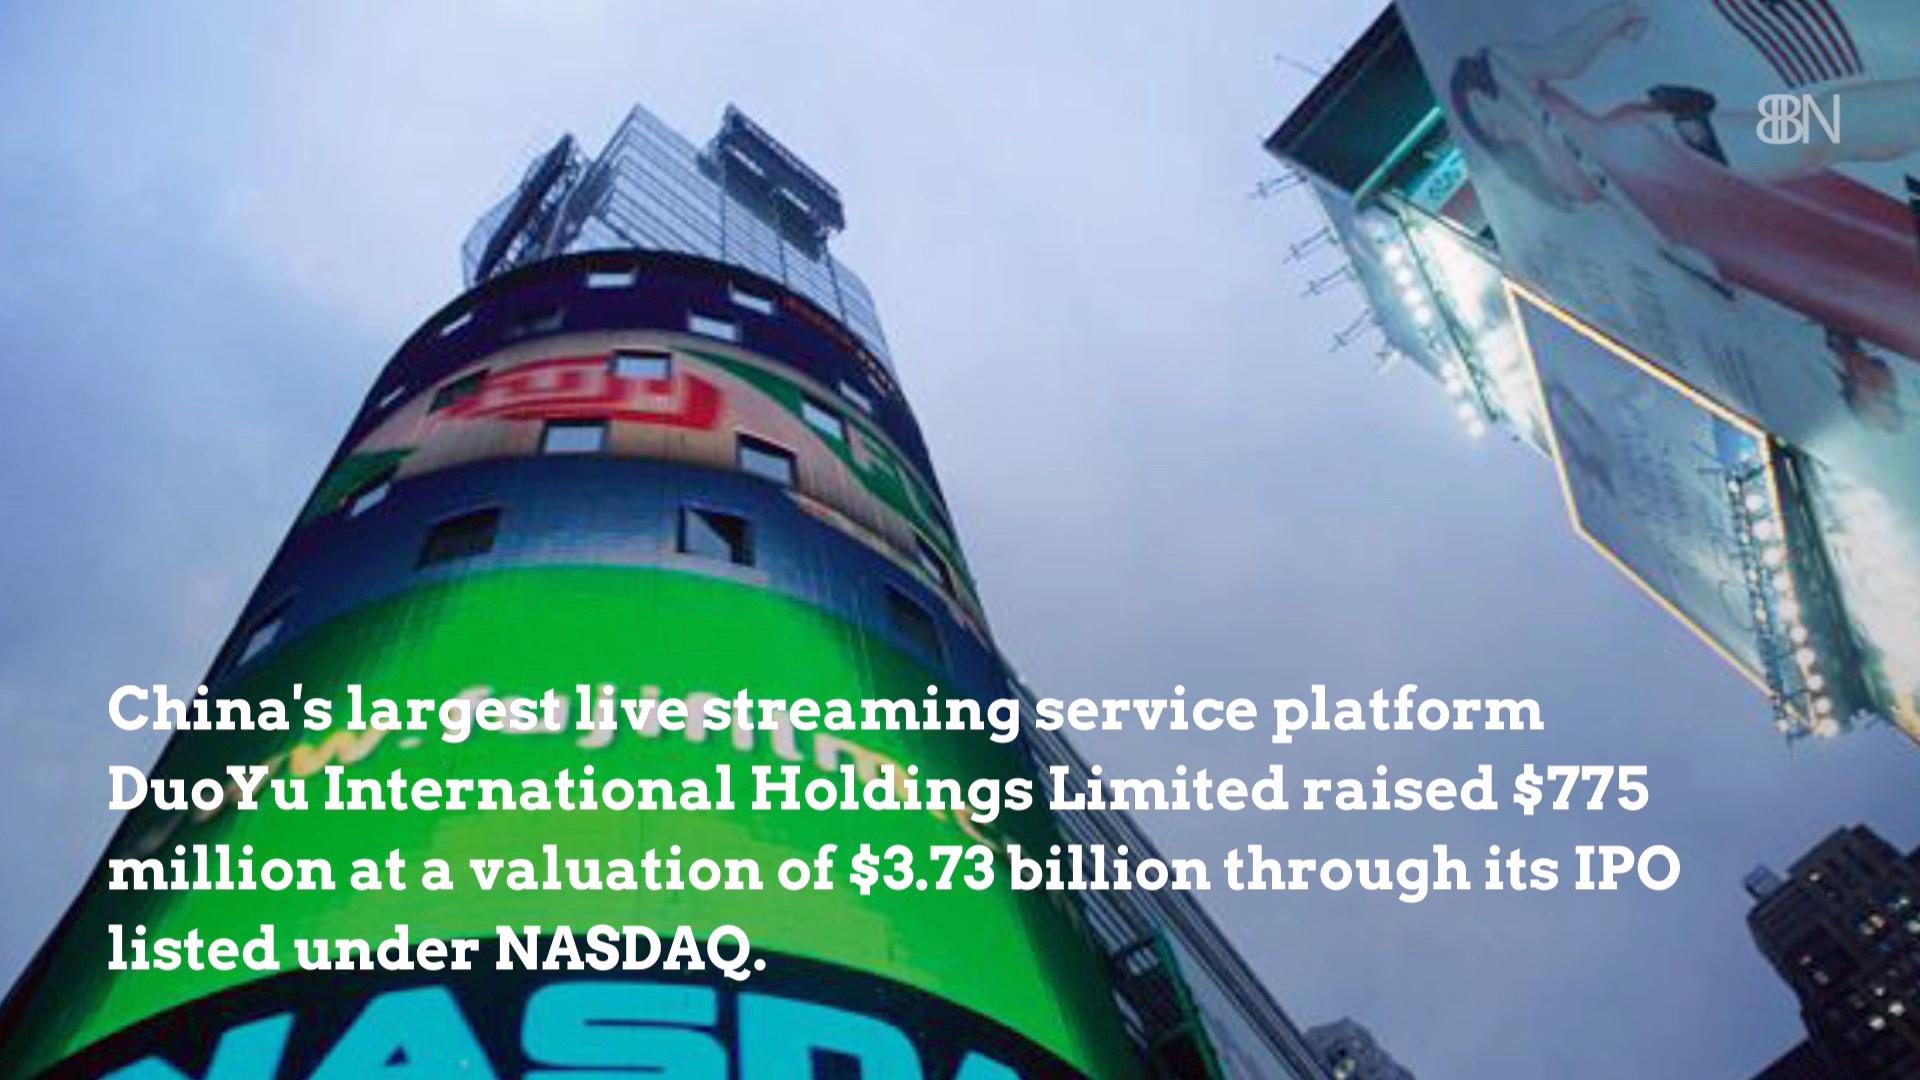 DuoYu Live Streaming Raised Hundreds Of Millions During IPO